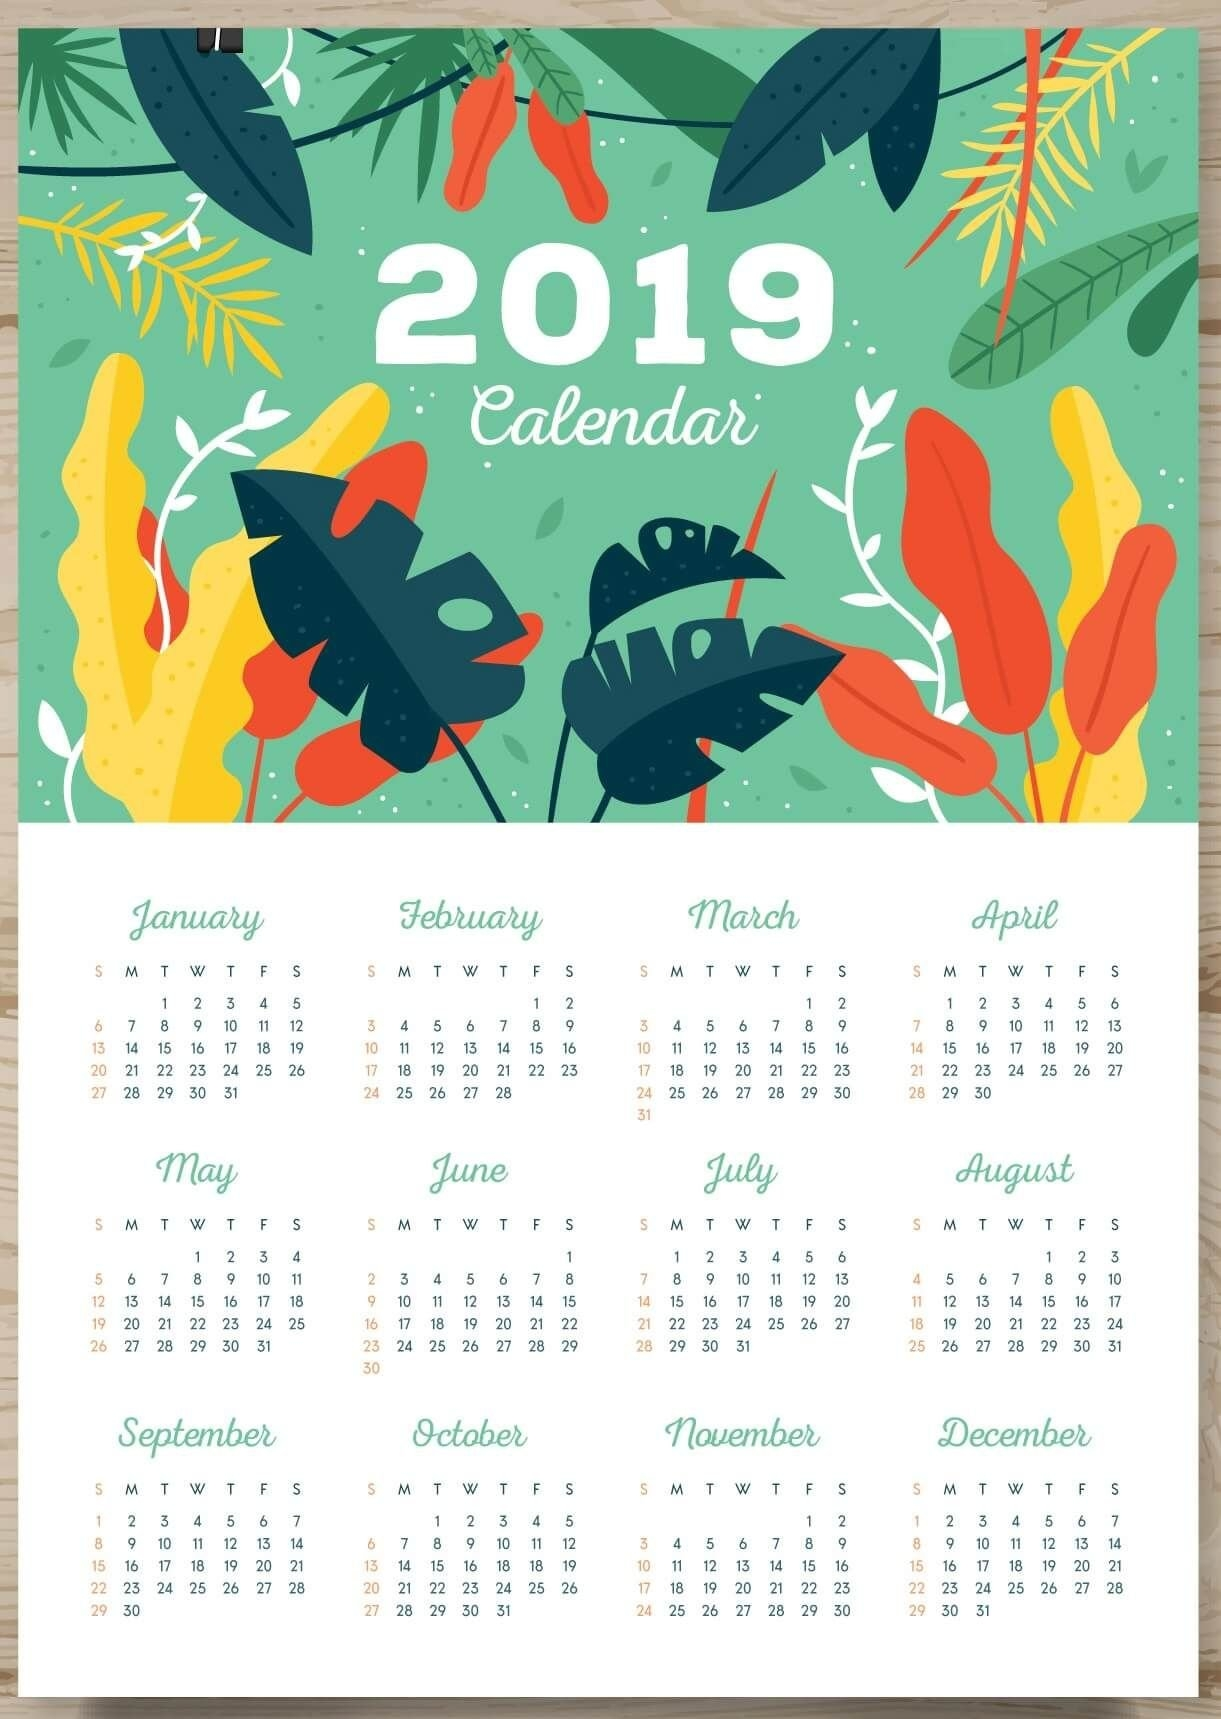 One Page Calendar 2019 #2019Calendars | 2019 Calendar | Calendar 1 Page Yearly Calendar 2019